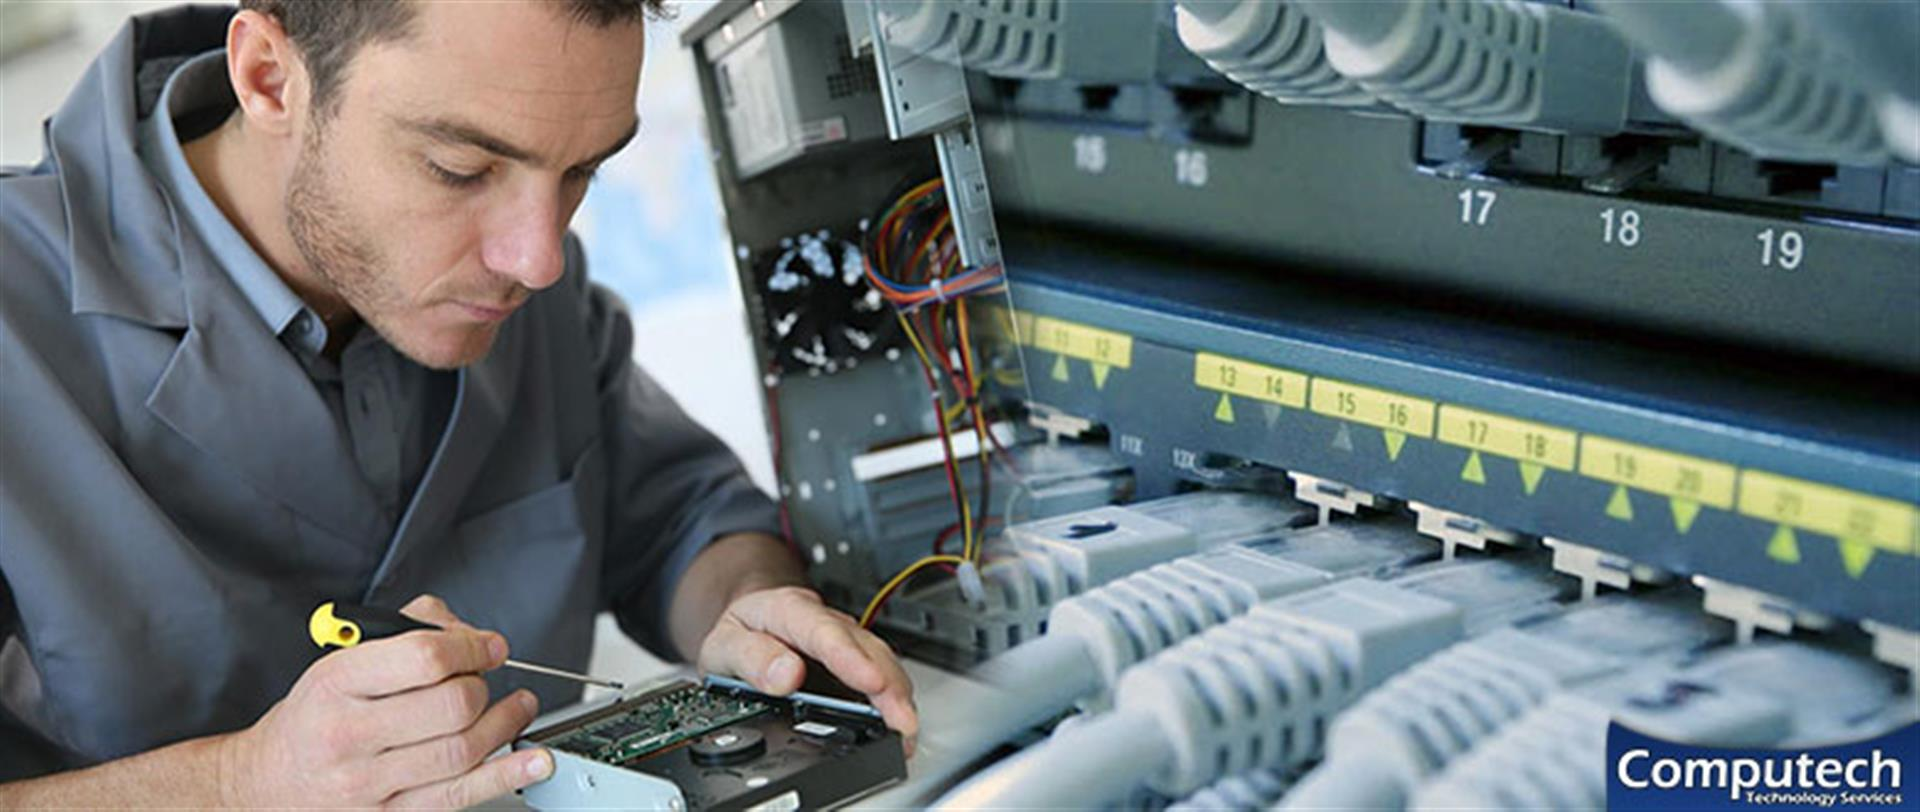 Wellton Arizona On-Site PC & Printer Repair, Networking, Voice and Broadband Data Cabling Services